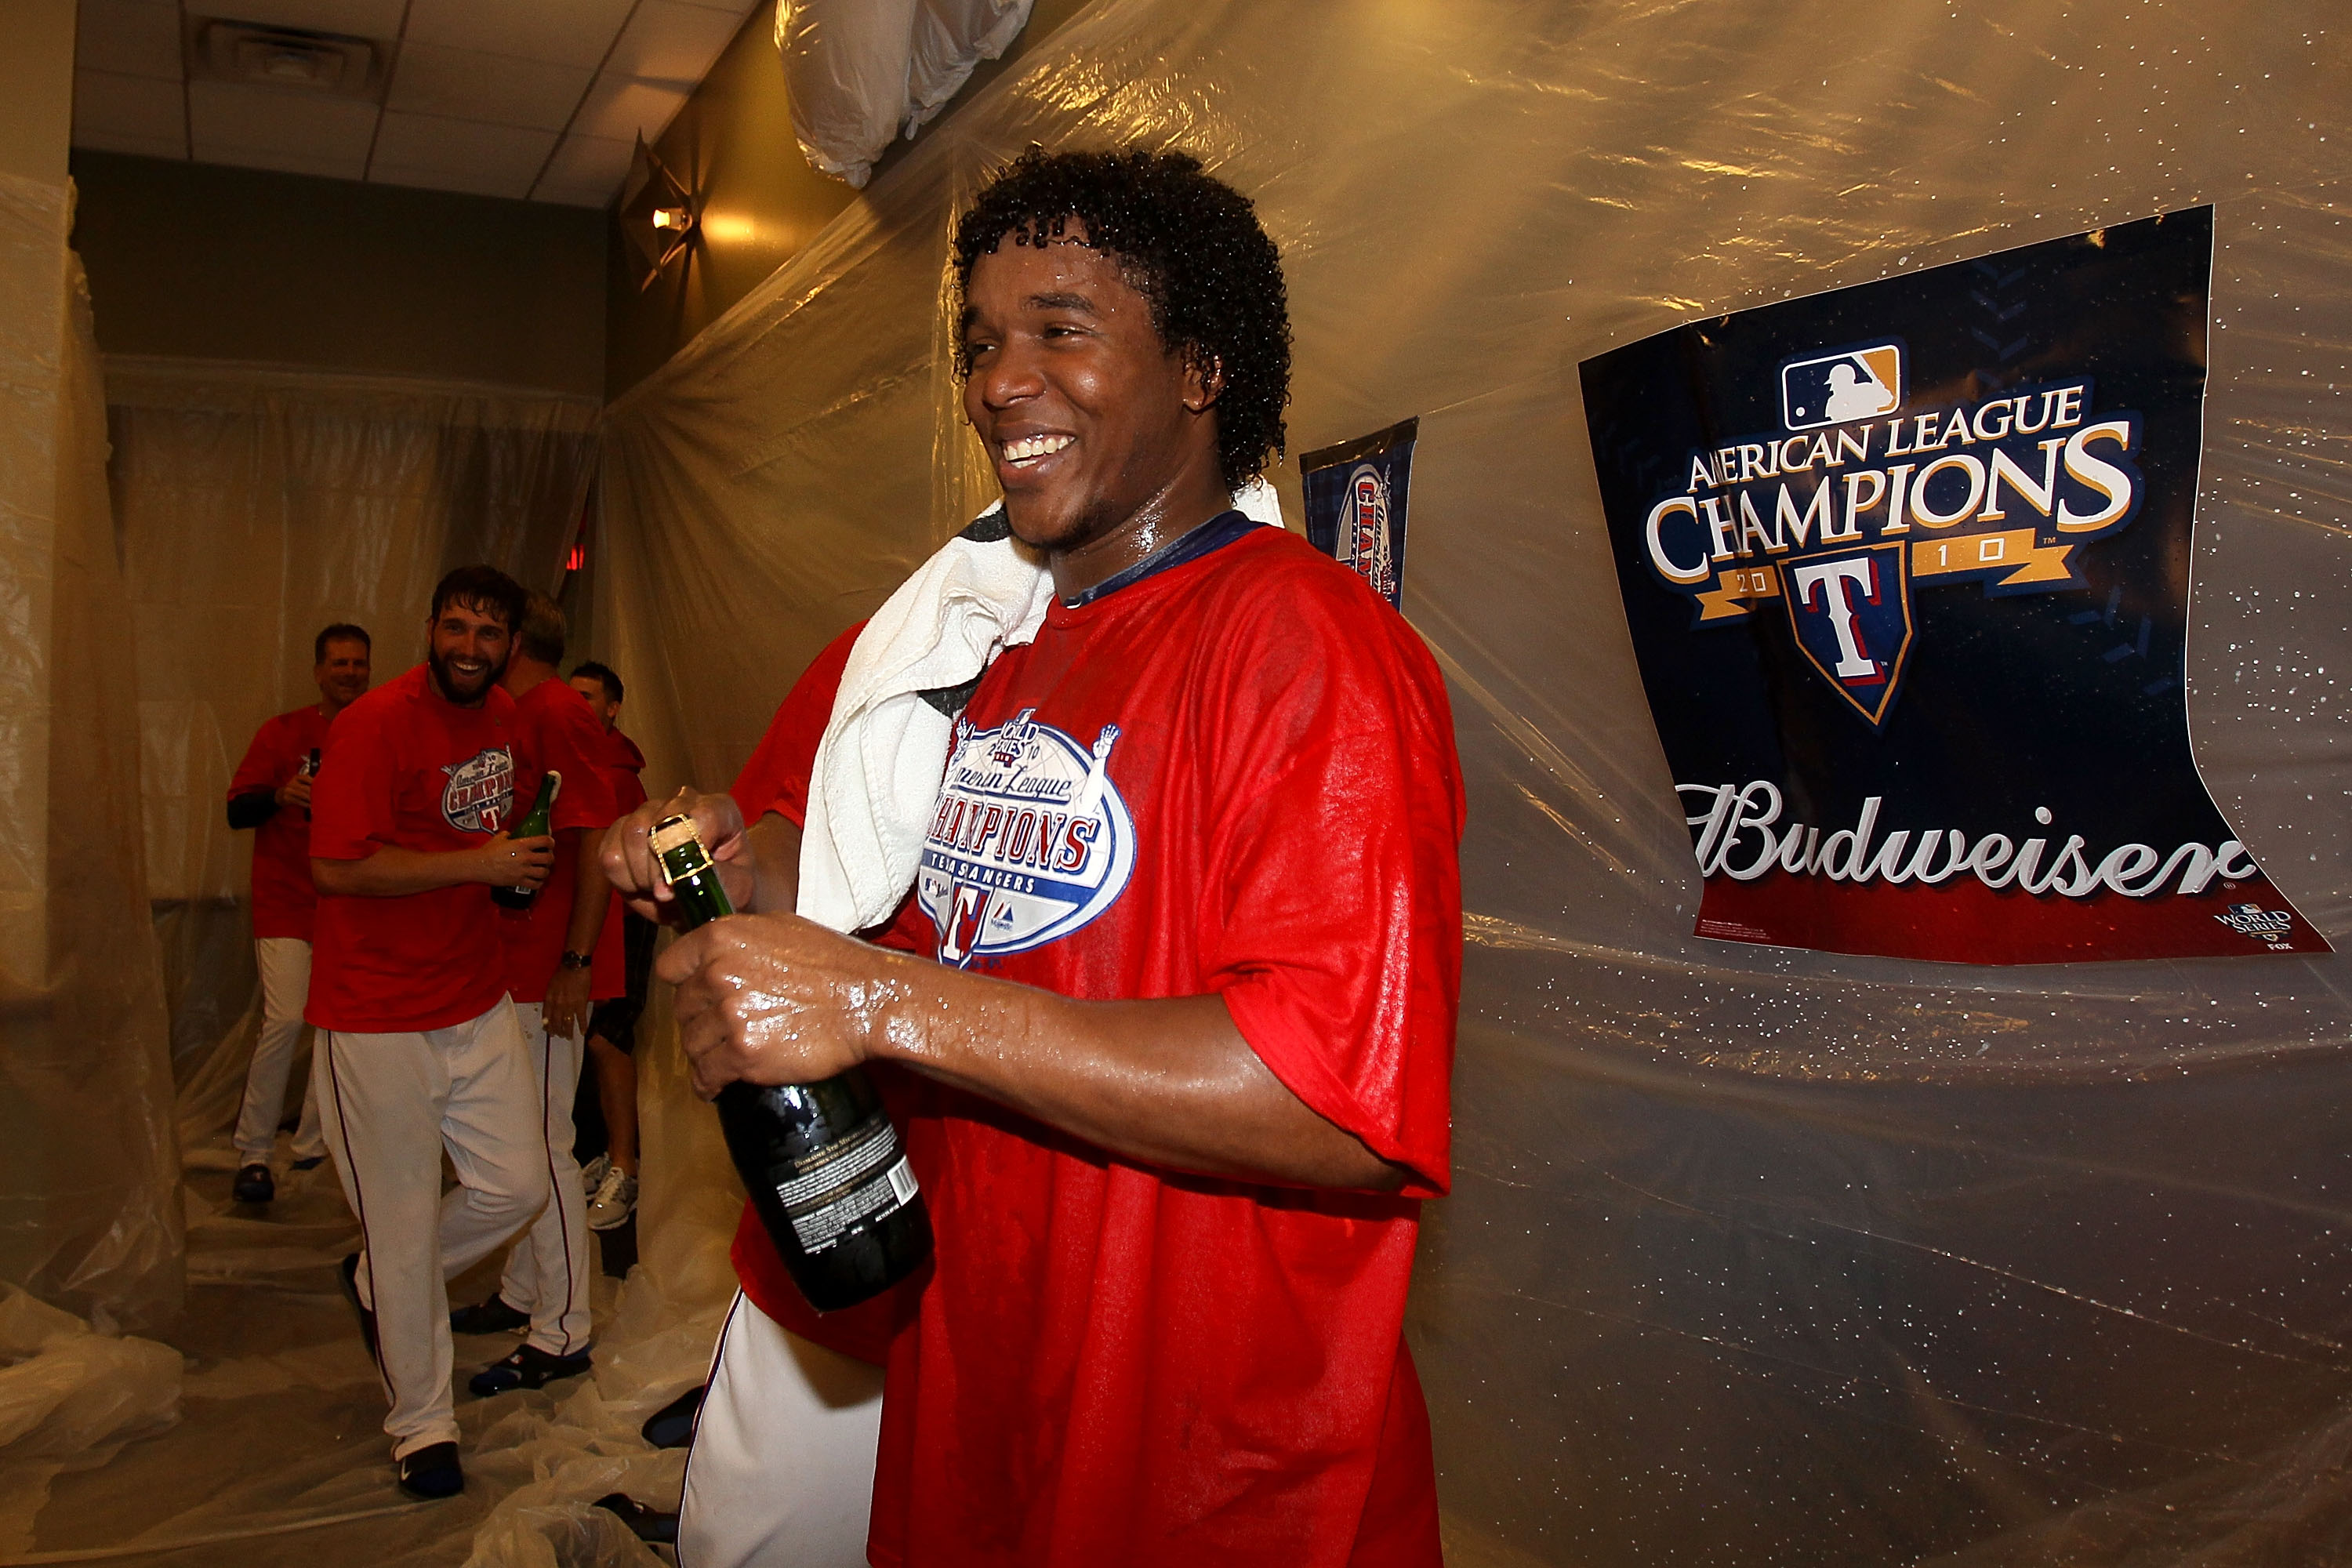 ARLINGTON, TX - OCTOBER 22:  Neftali Feliz #30 of the Texas Rangers sprays champagne in the lockerroom with after defeating the New York Yankees 6-1 in Game Six of the ALCS to advance to the World Series during the 2010 MLB Playoffs at Rangers Ballpark in